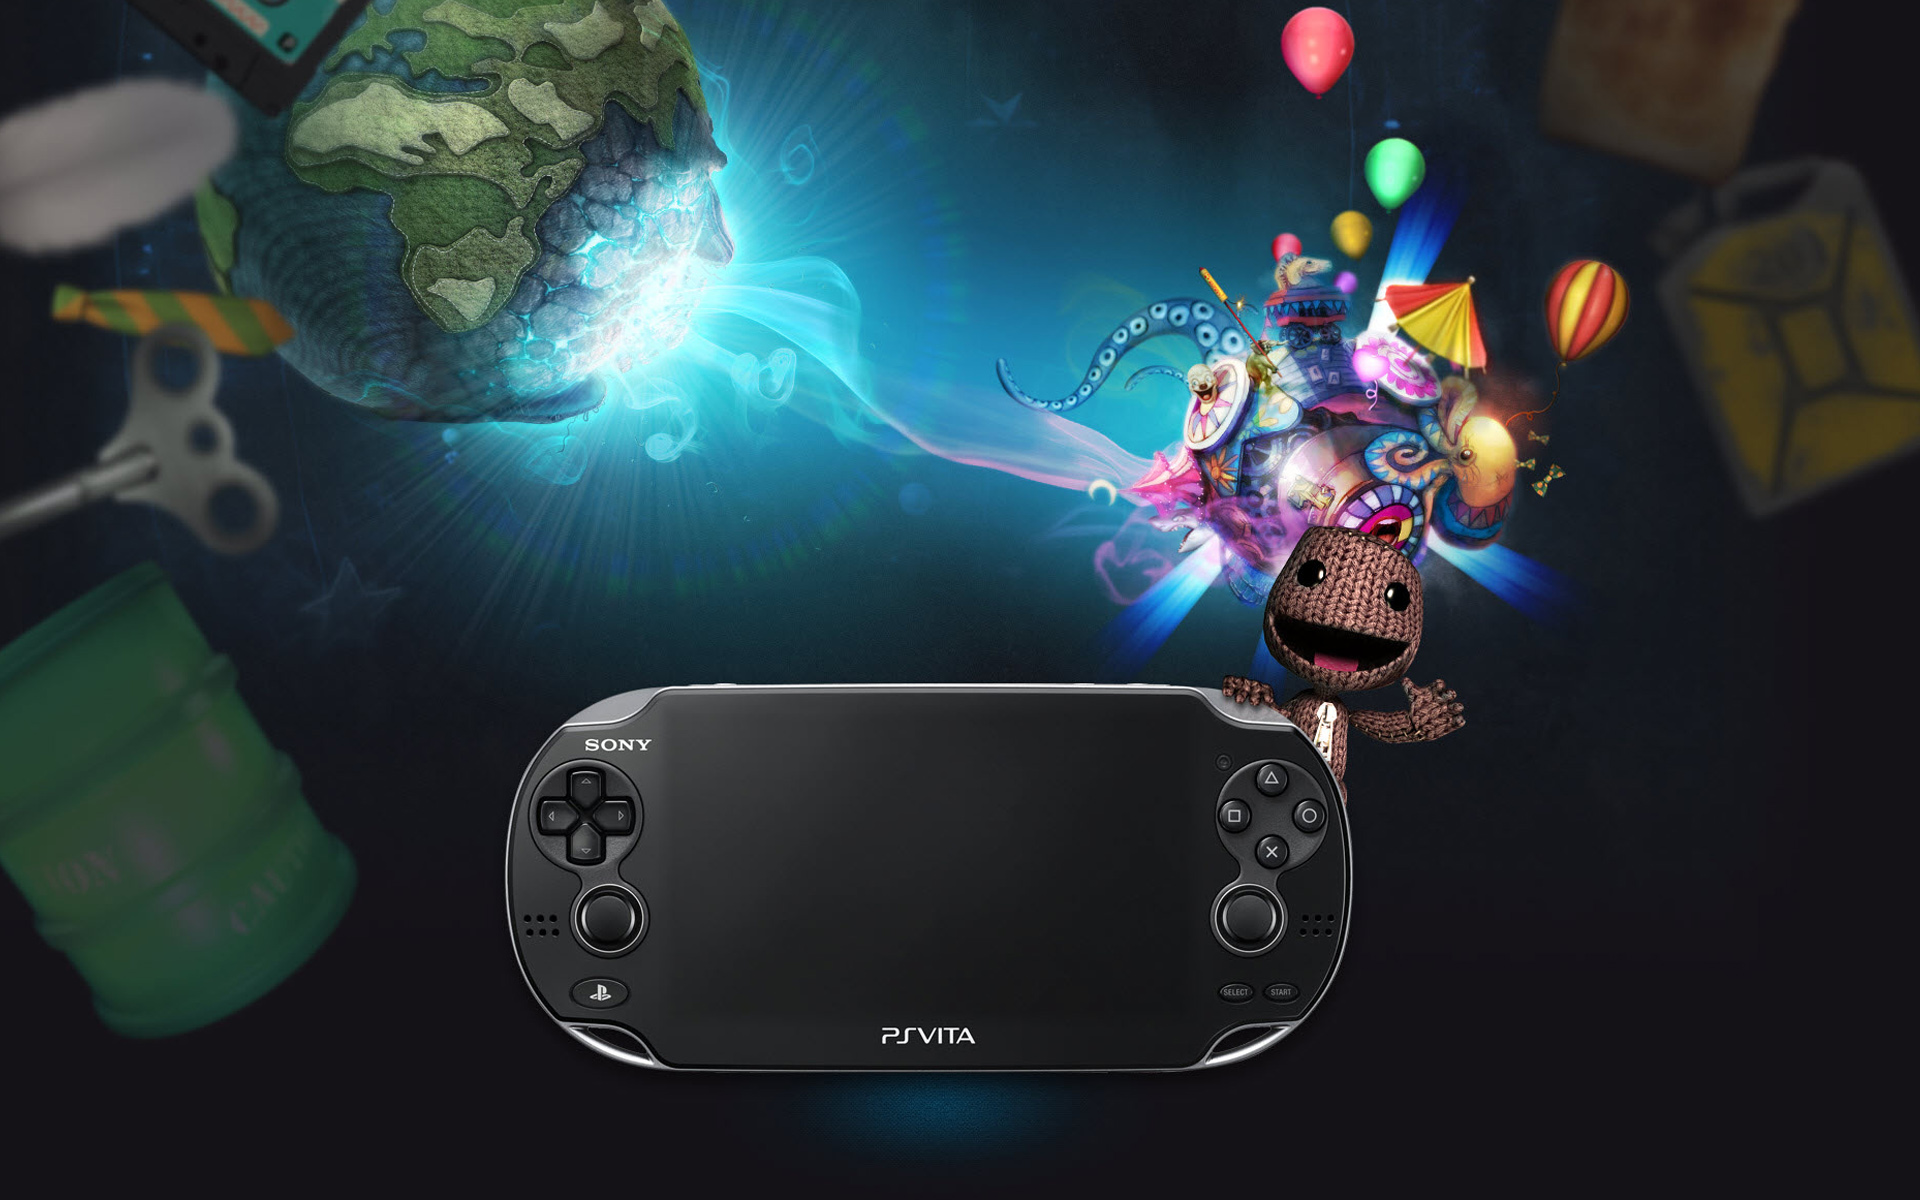 LittleBigPlanet PlayStation Vita 217.99 Kb